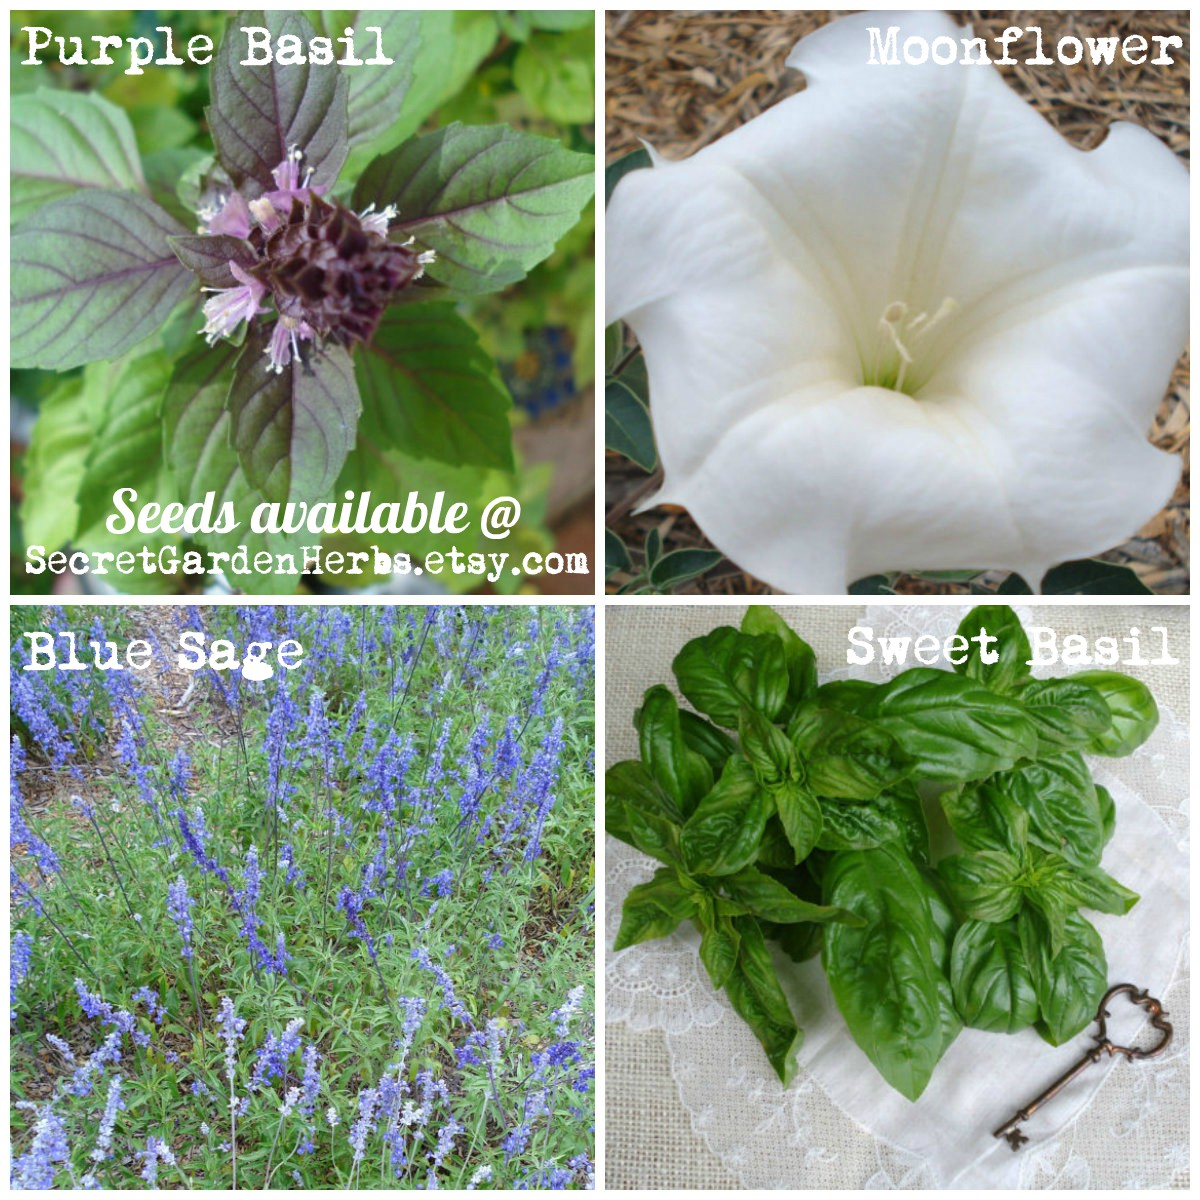 Secret Garden Herbs Etsy shop